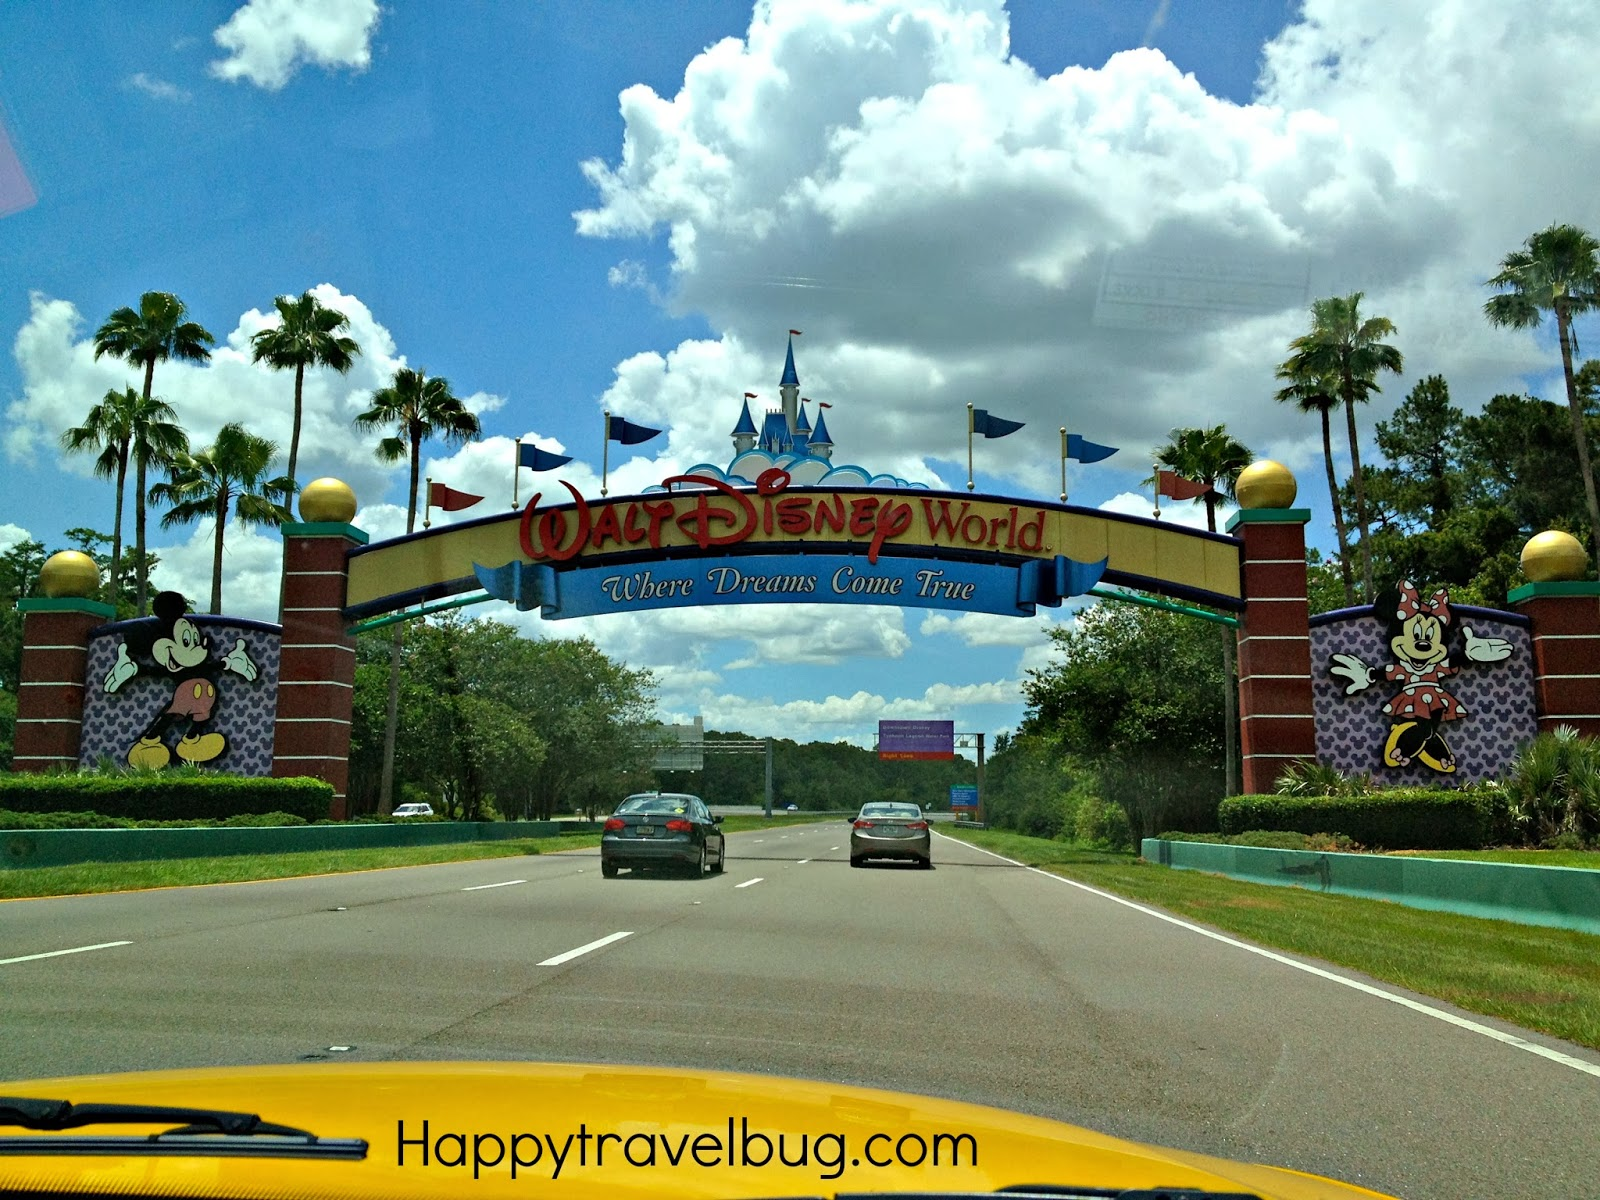 Entrance to Disney World